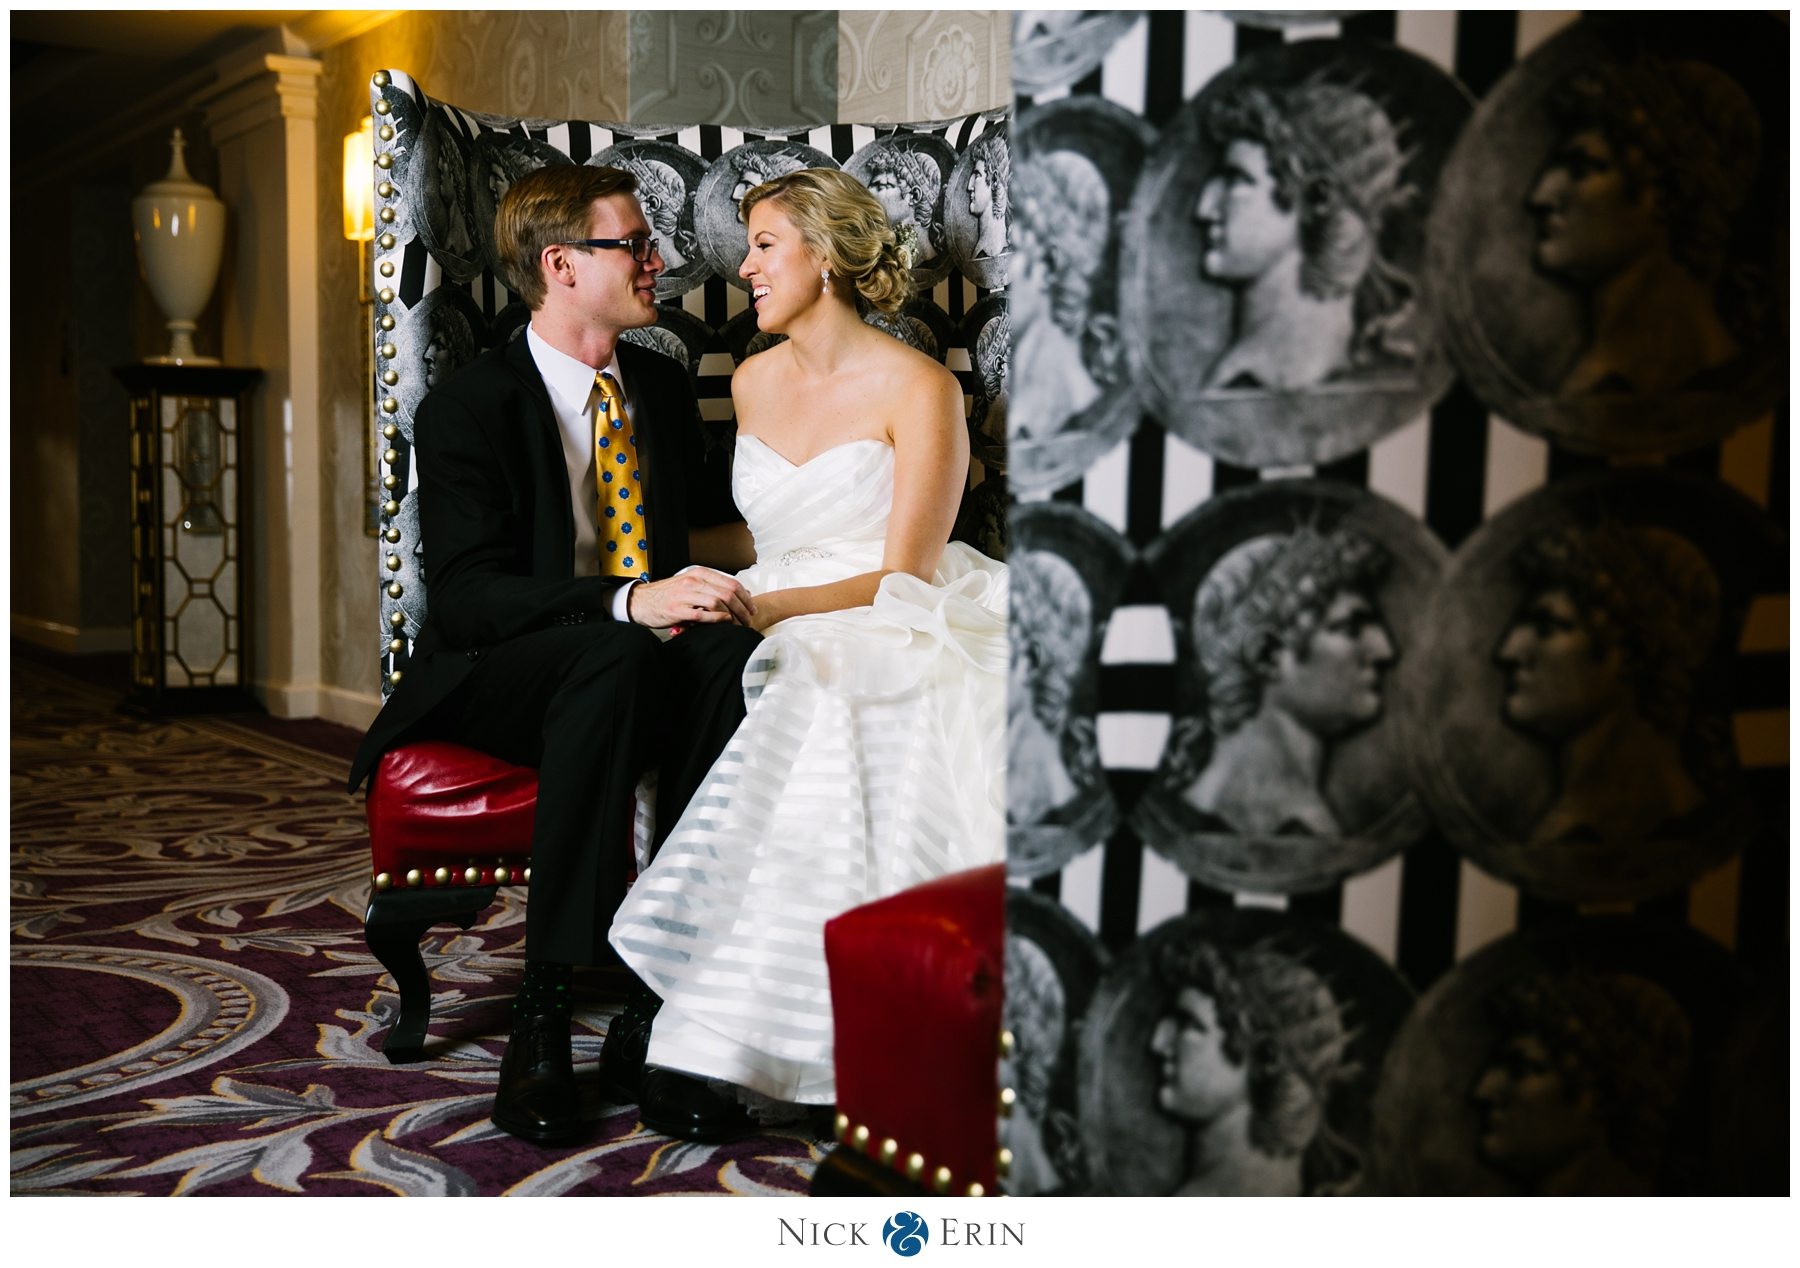 Donner_Photography_Washington DC Wedding_Rachel & Taylor_0005